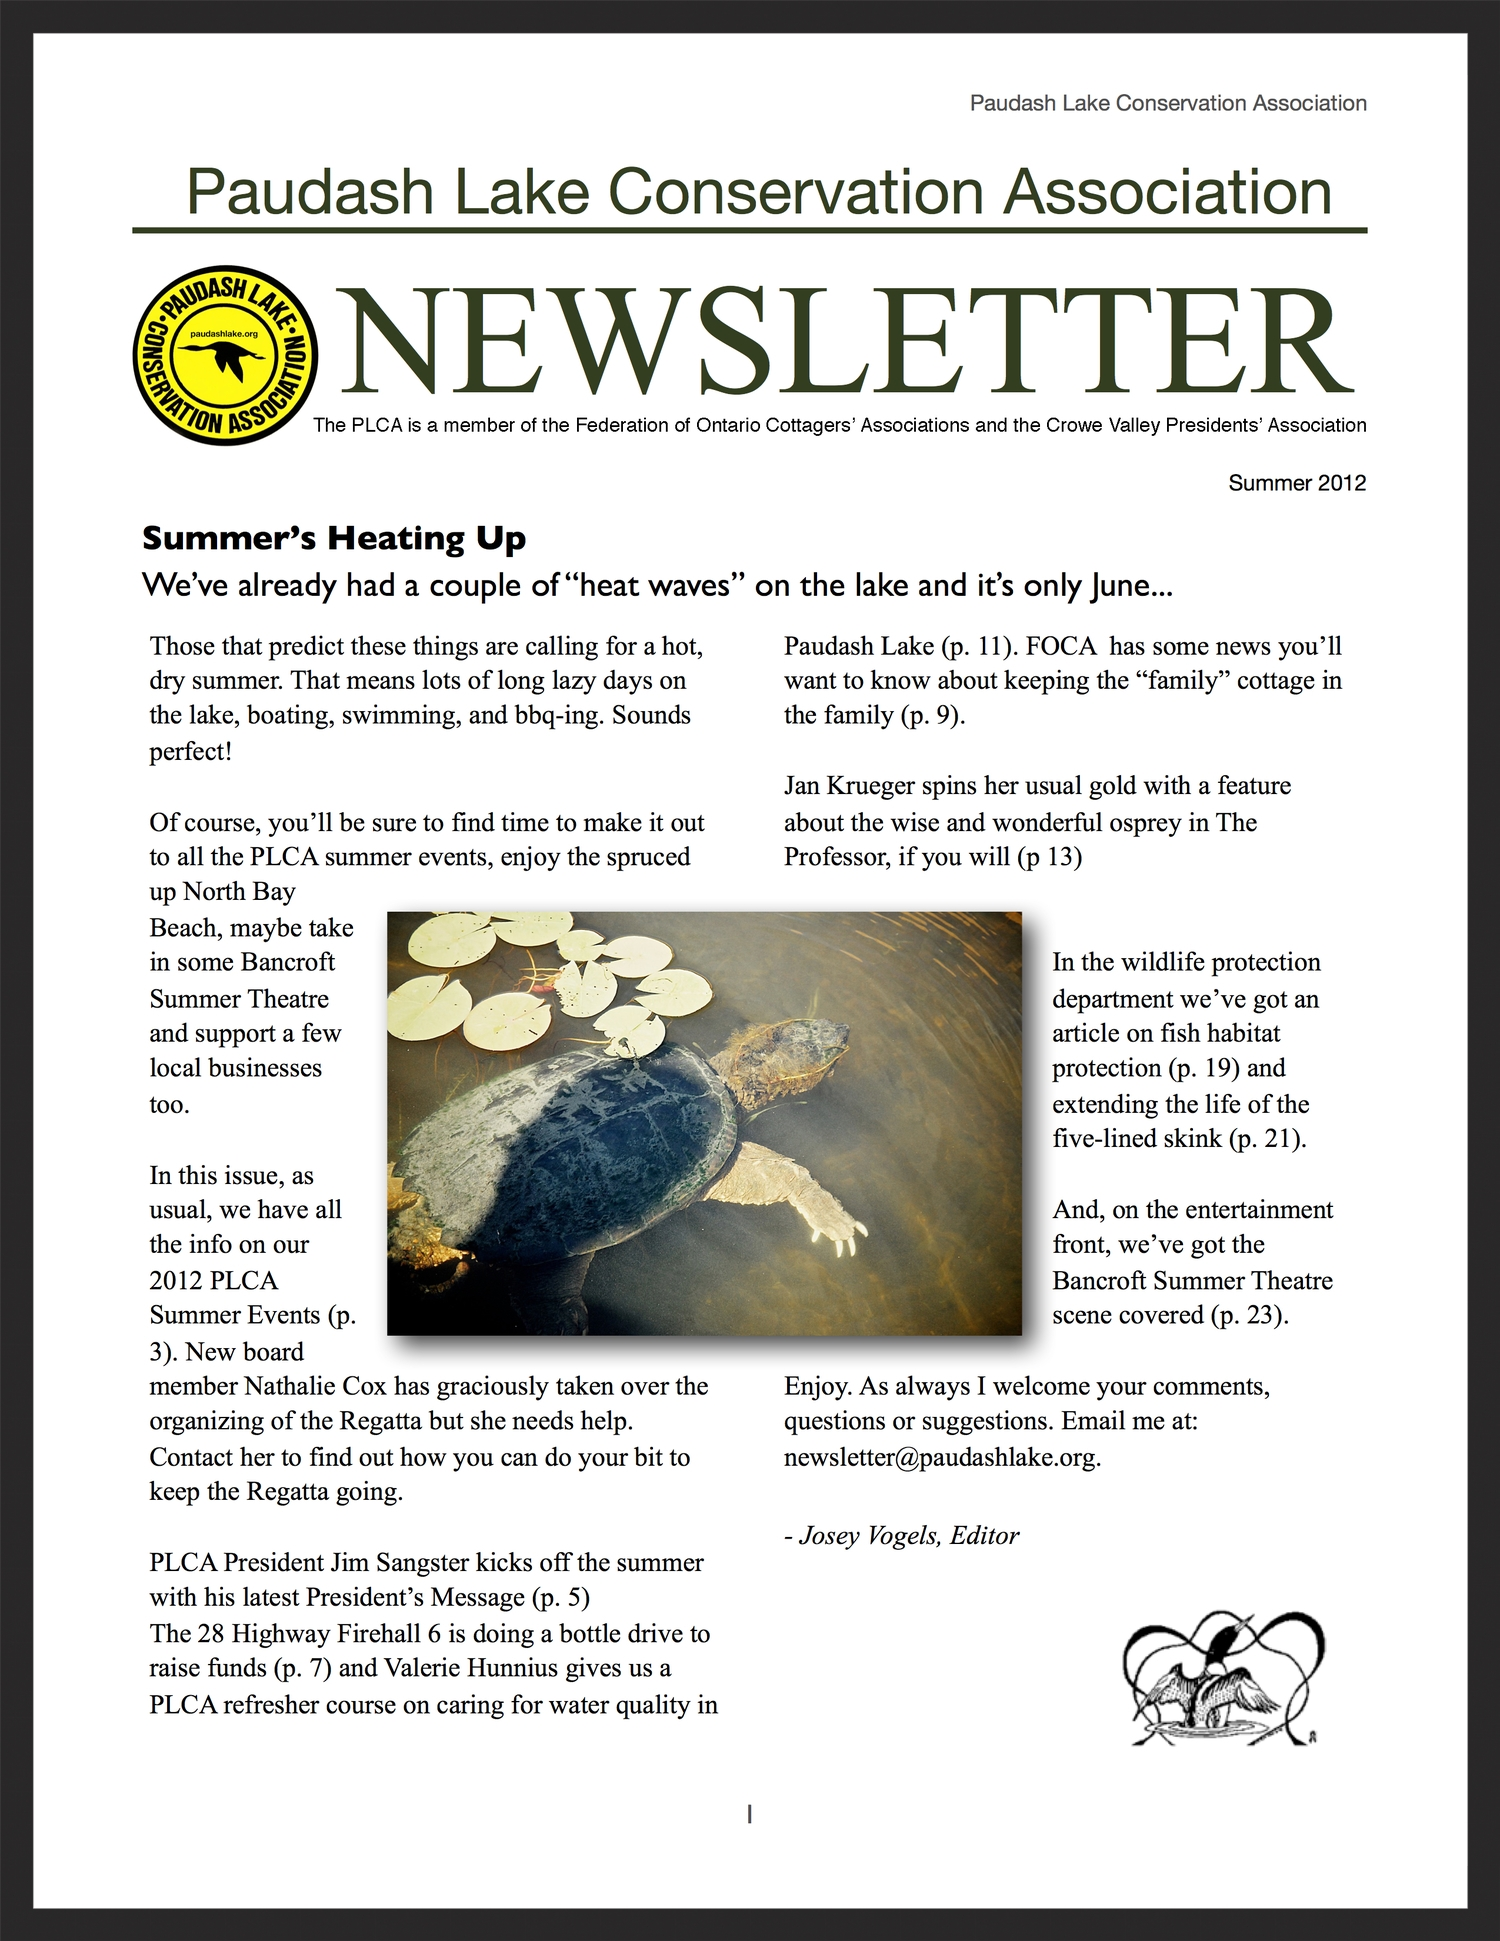 PLCA Newsletter, summer 2012